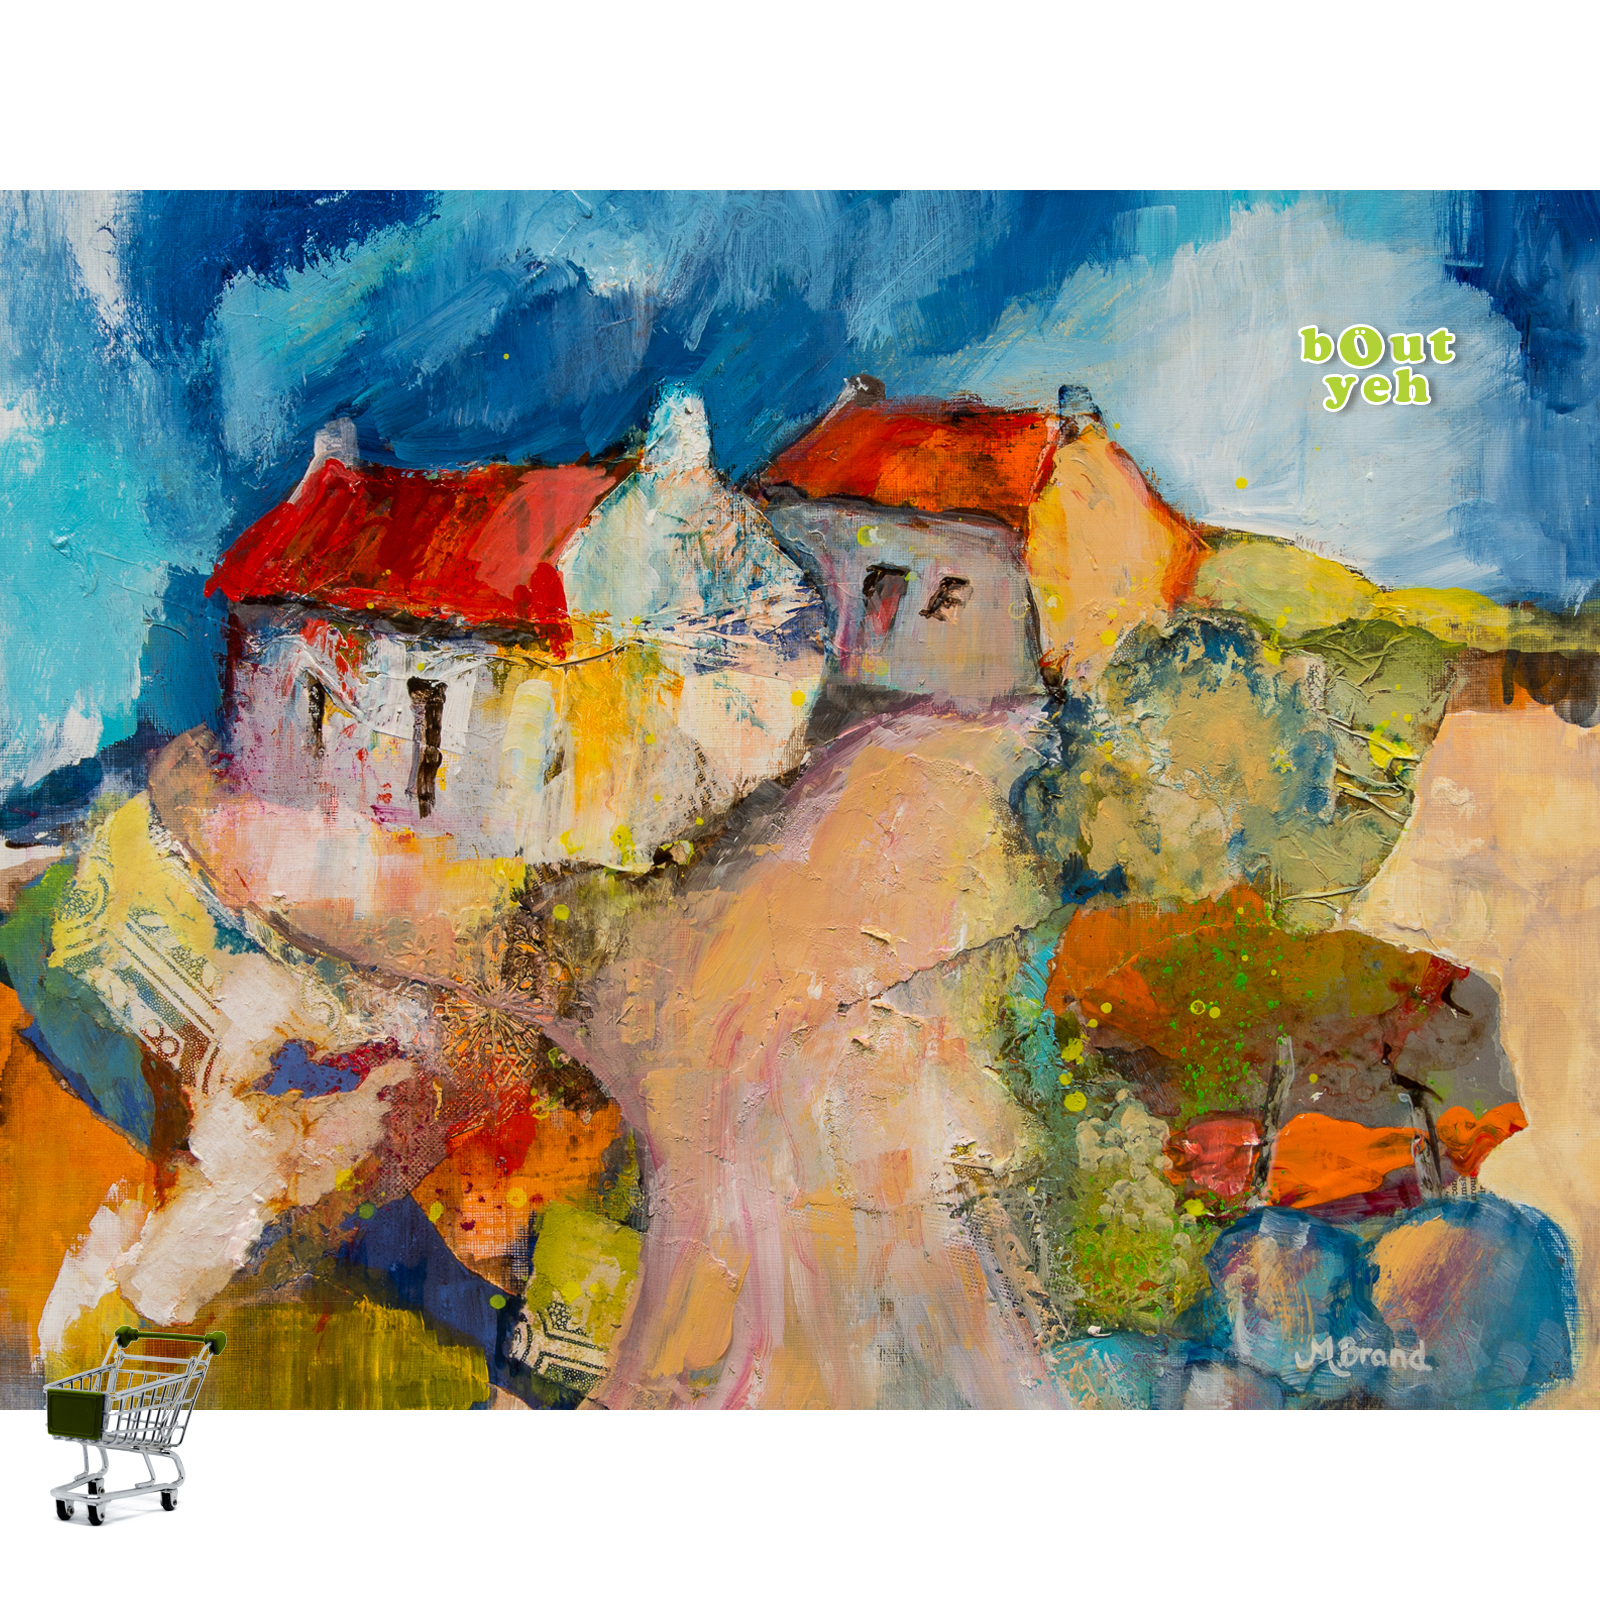 Irish landscape painting, County Down, with shopping cart icon - photo 5614.